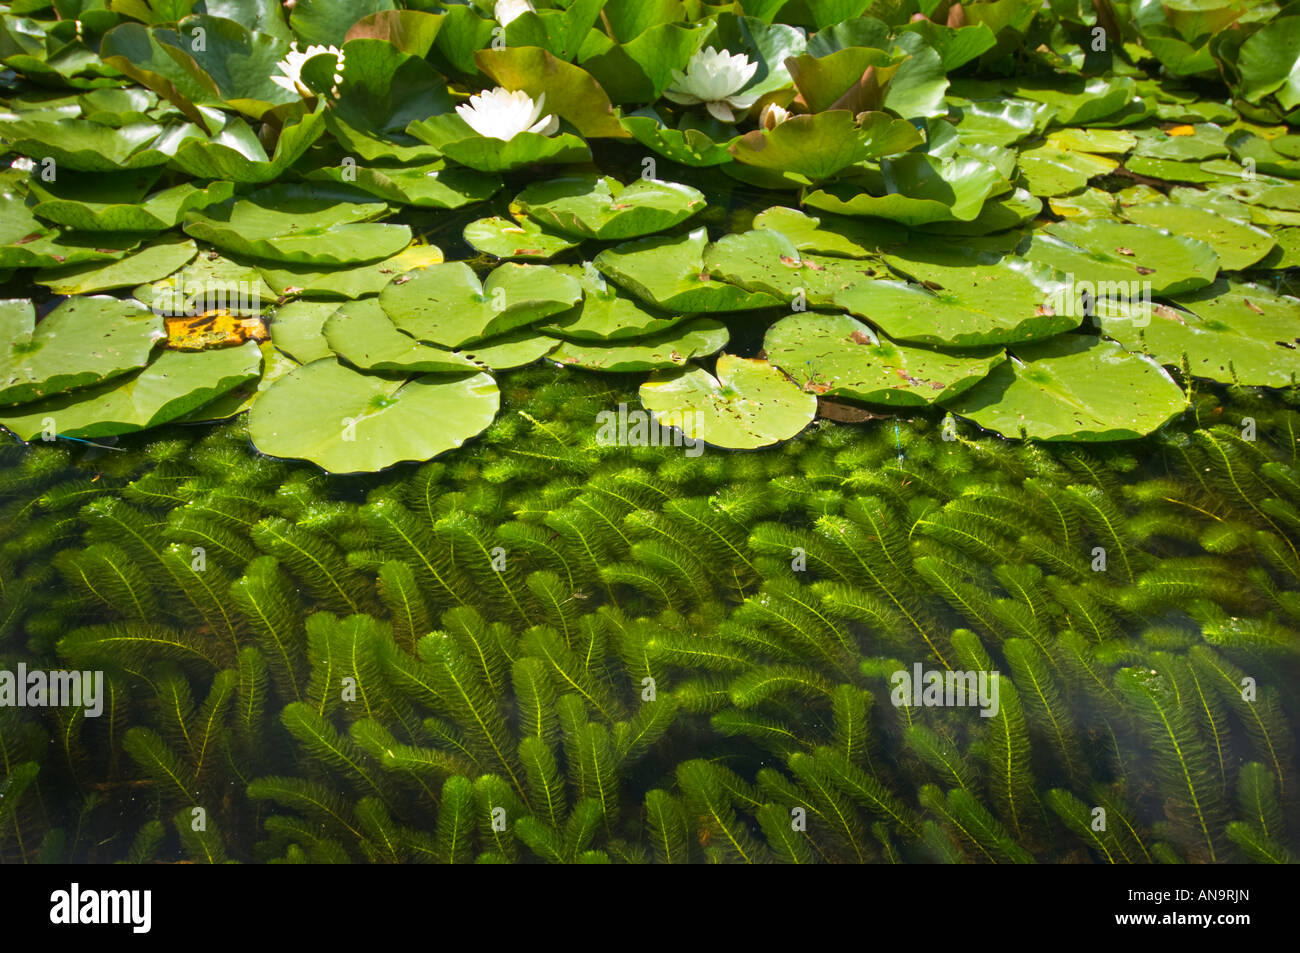 Biotope ecosystem plant life in a pond pool waterplants for Ecosystem pool